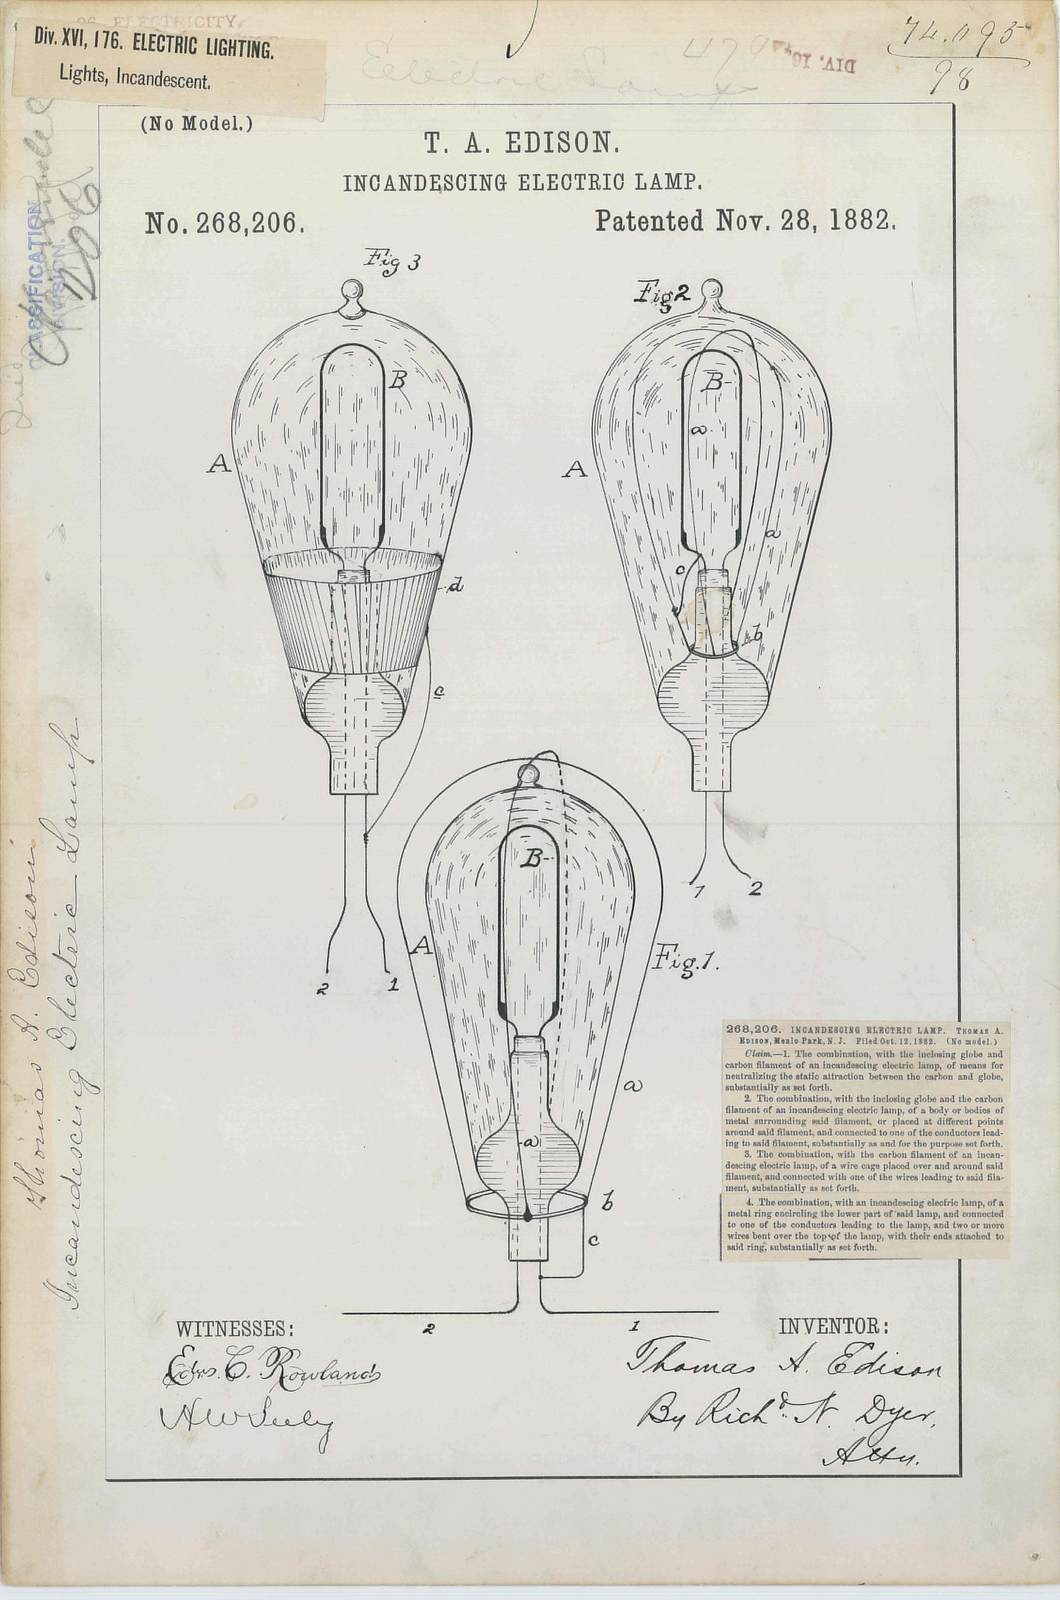 Patent Drawing for T. A. Edison's Incandescing Electric Lamp